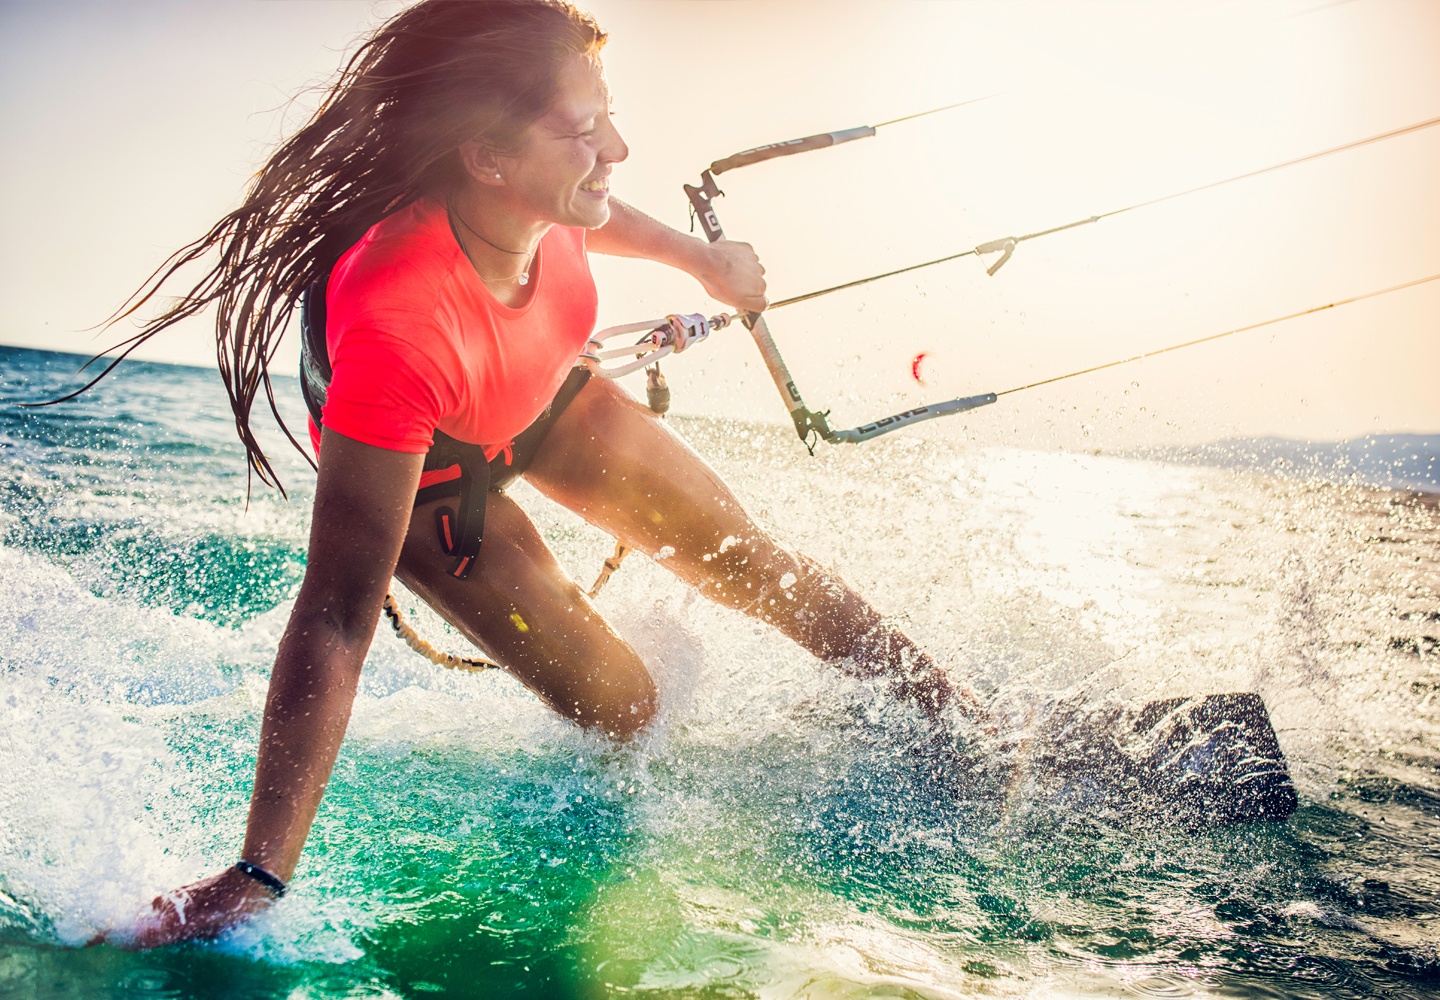 Smiling young woman kiteboarding on the sea